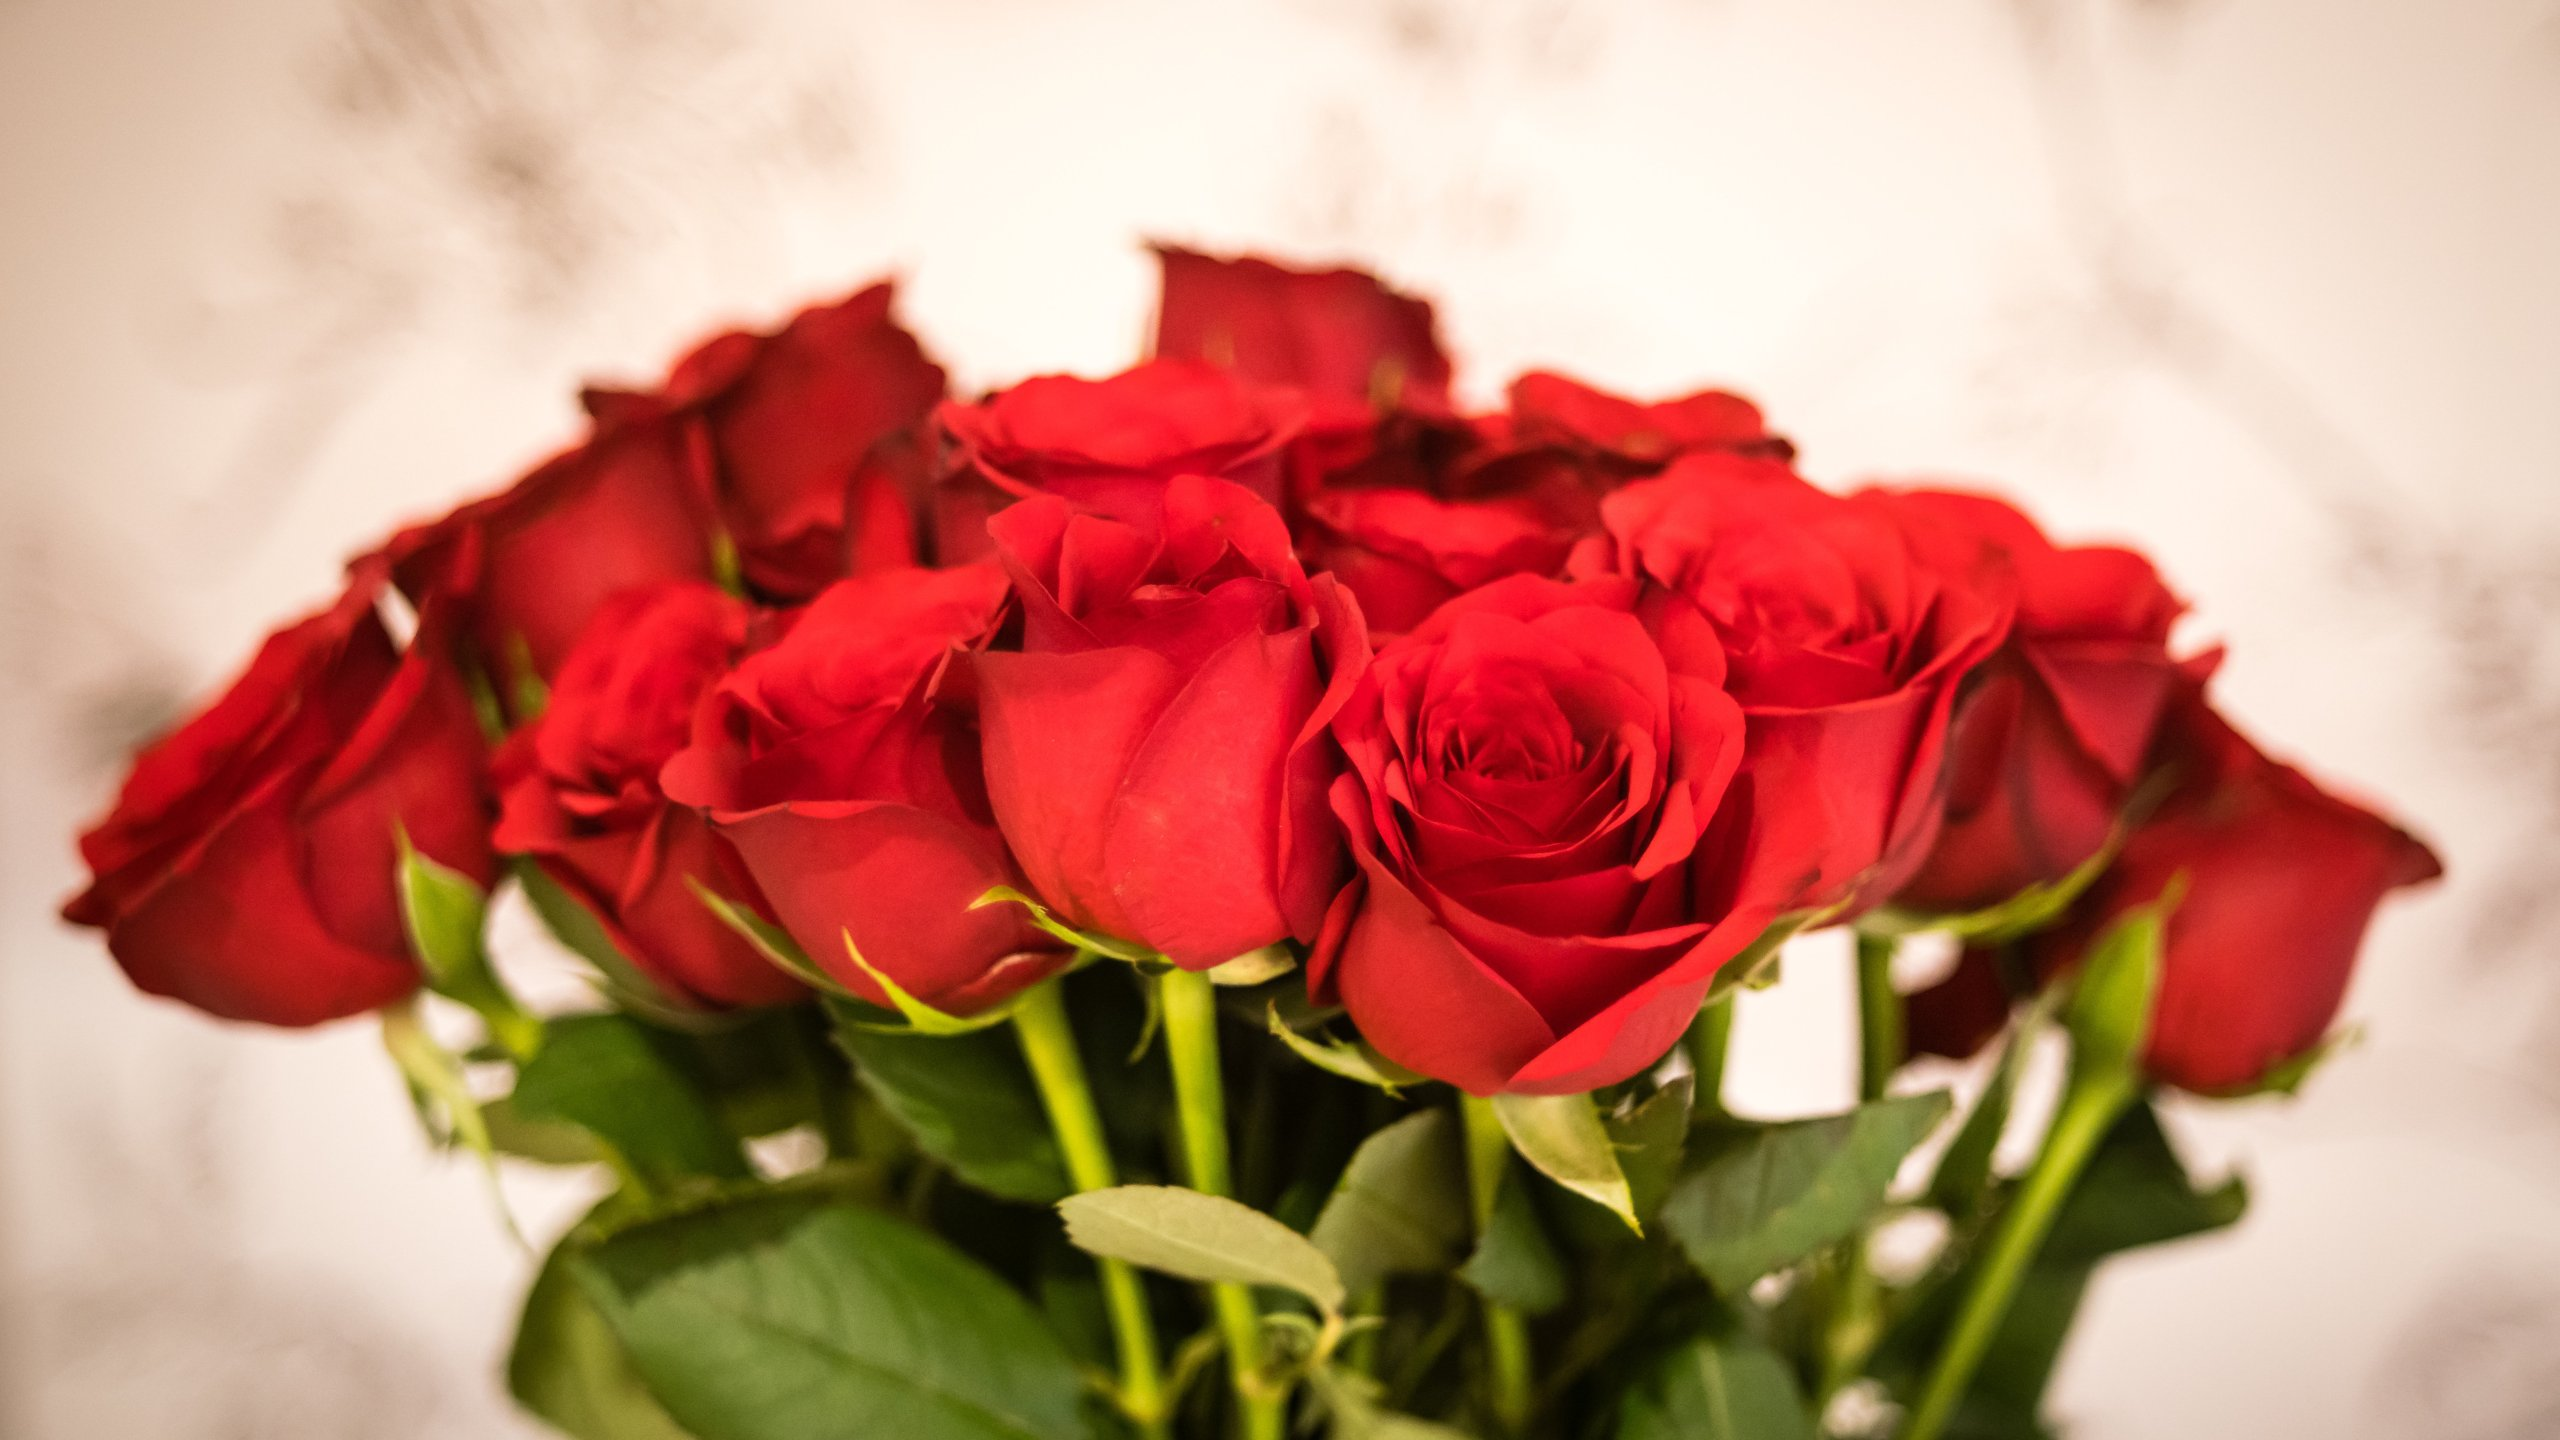 A classic bunch of red roses is seen in this file photo. (Credit: Getty Images)